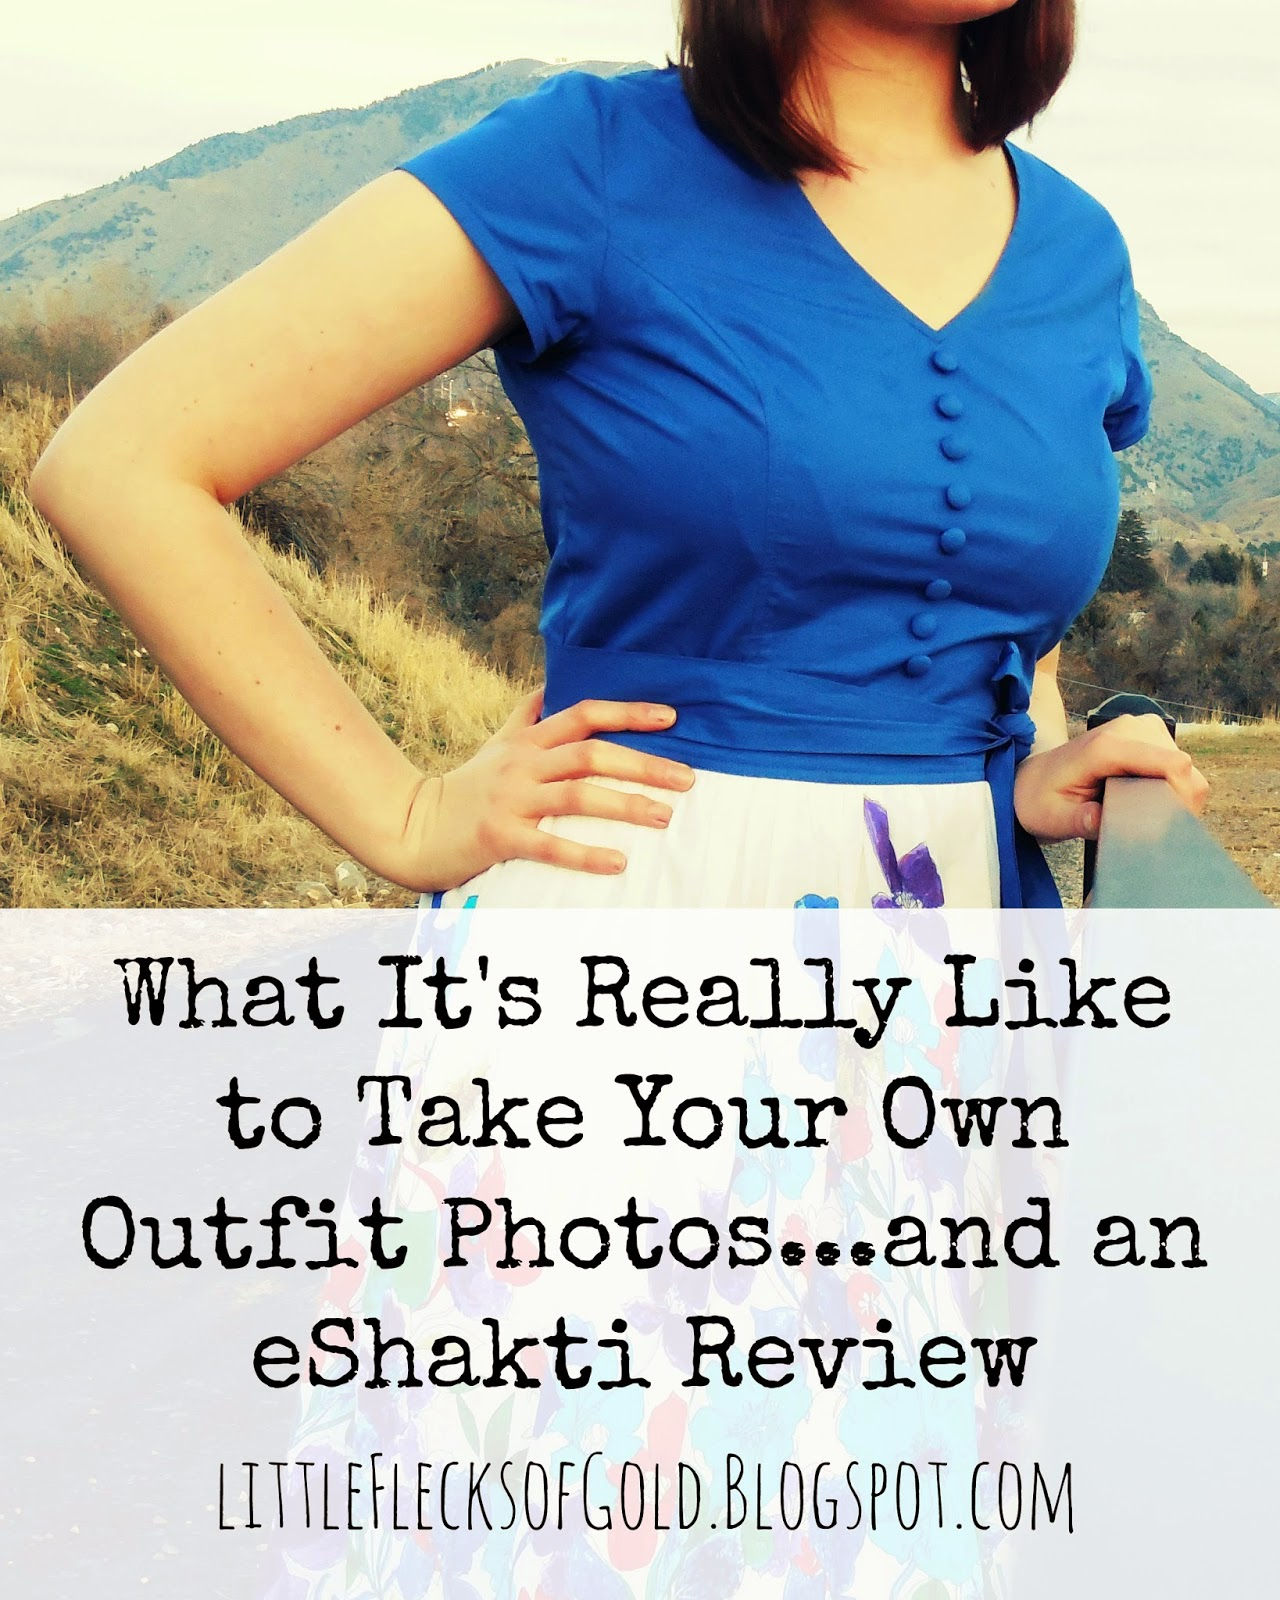 What It's Really Like to Take Your Own Outfit Photos and an eShakti Review